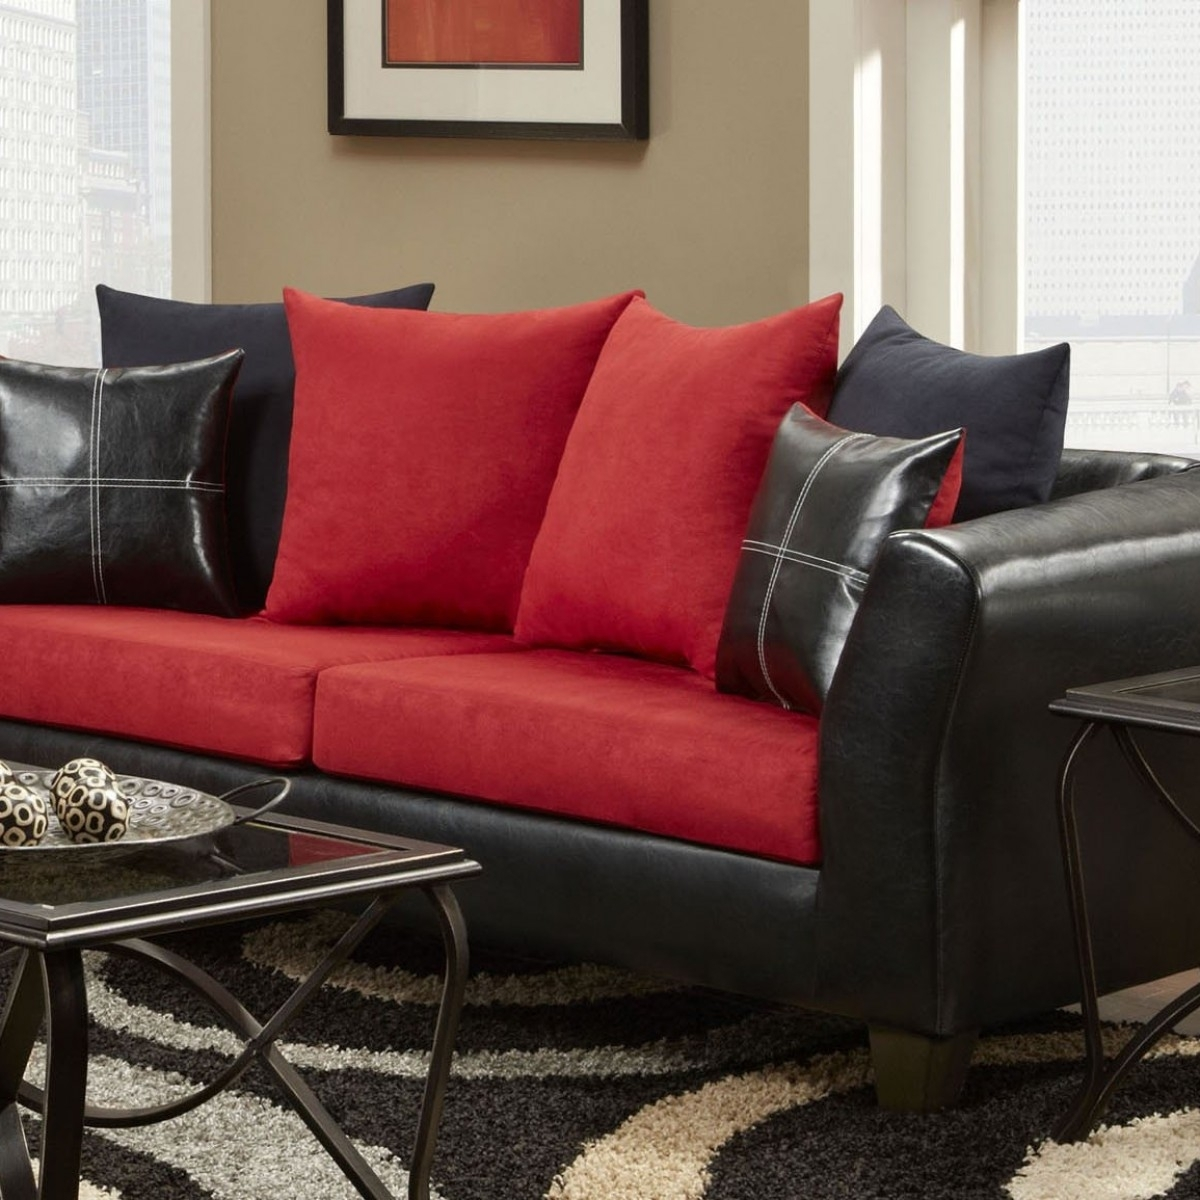 Cheap Sectional Sofas Under 500 — Cabinets, Beds, Sofas And With Regard To Sectional Sofas Under (View 3 of 10)